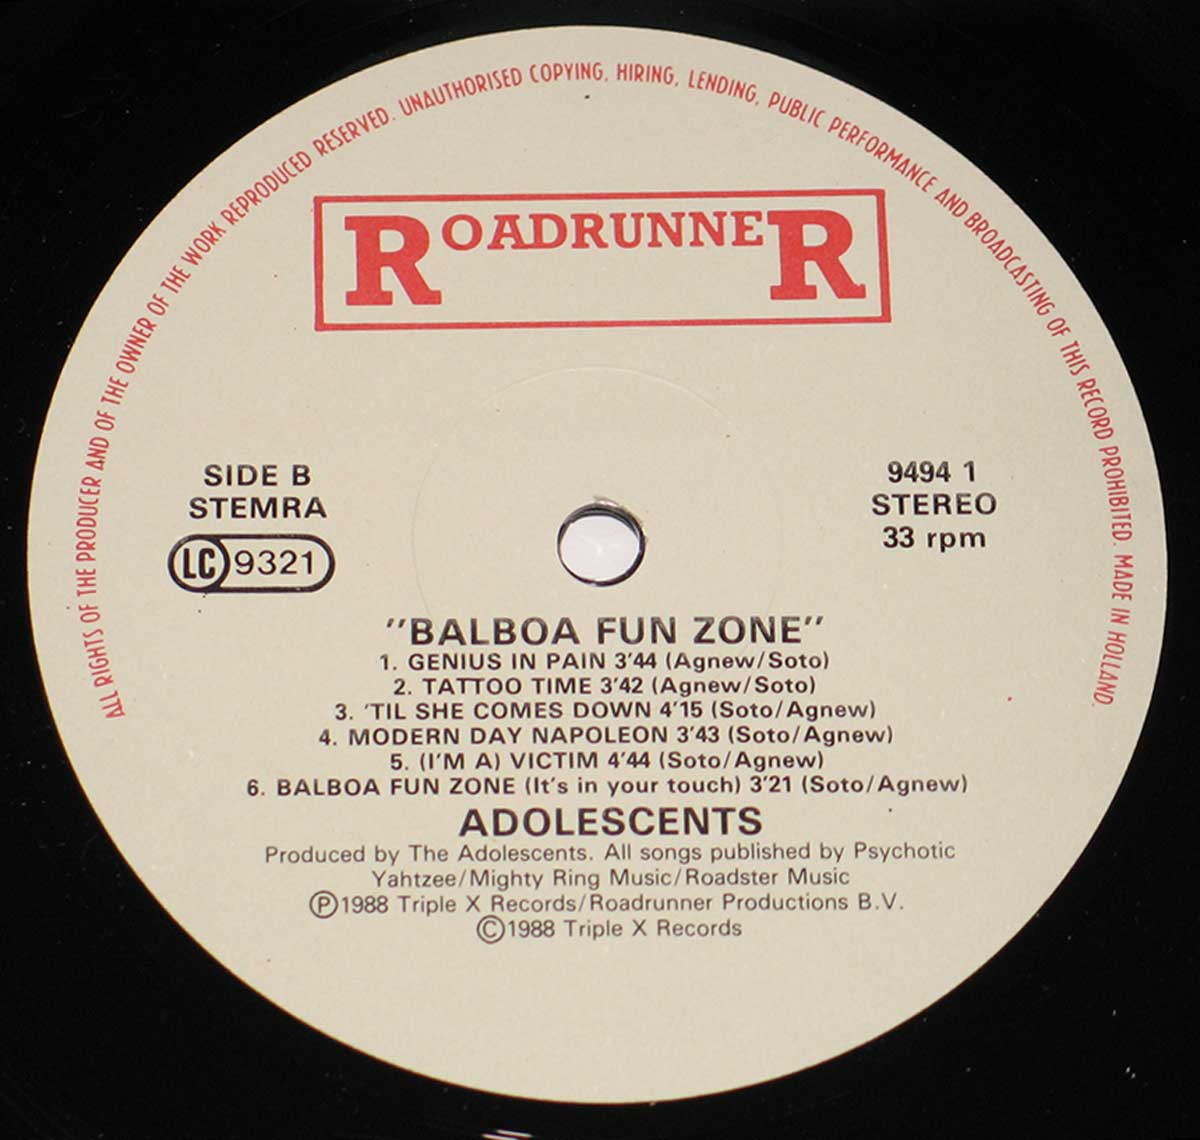 High Resolution Photo of the enlarged label ADOLESCENTS - Balboa Fun Zone https://vinyl-records.nl